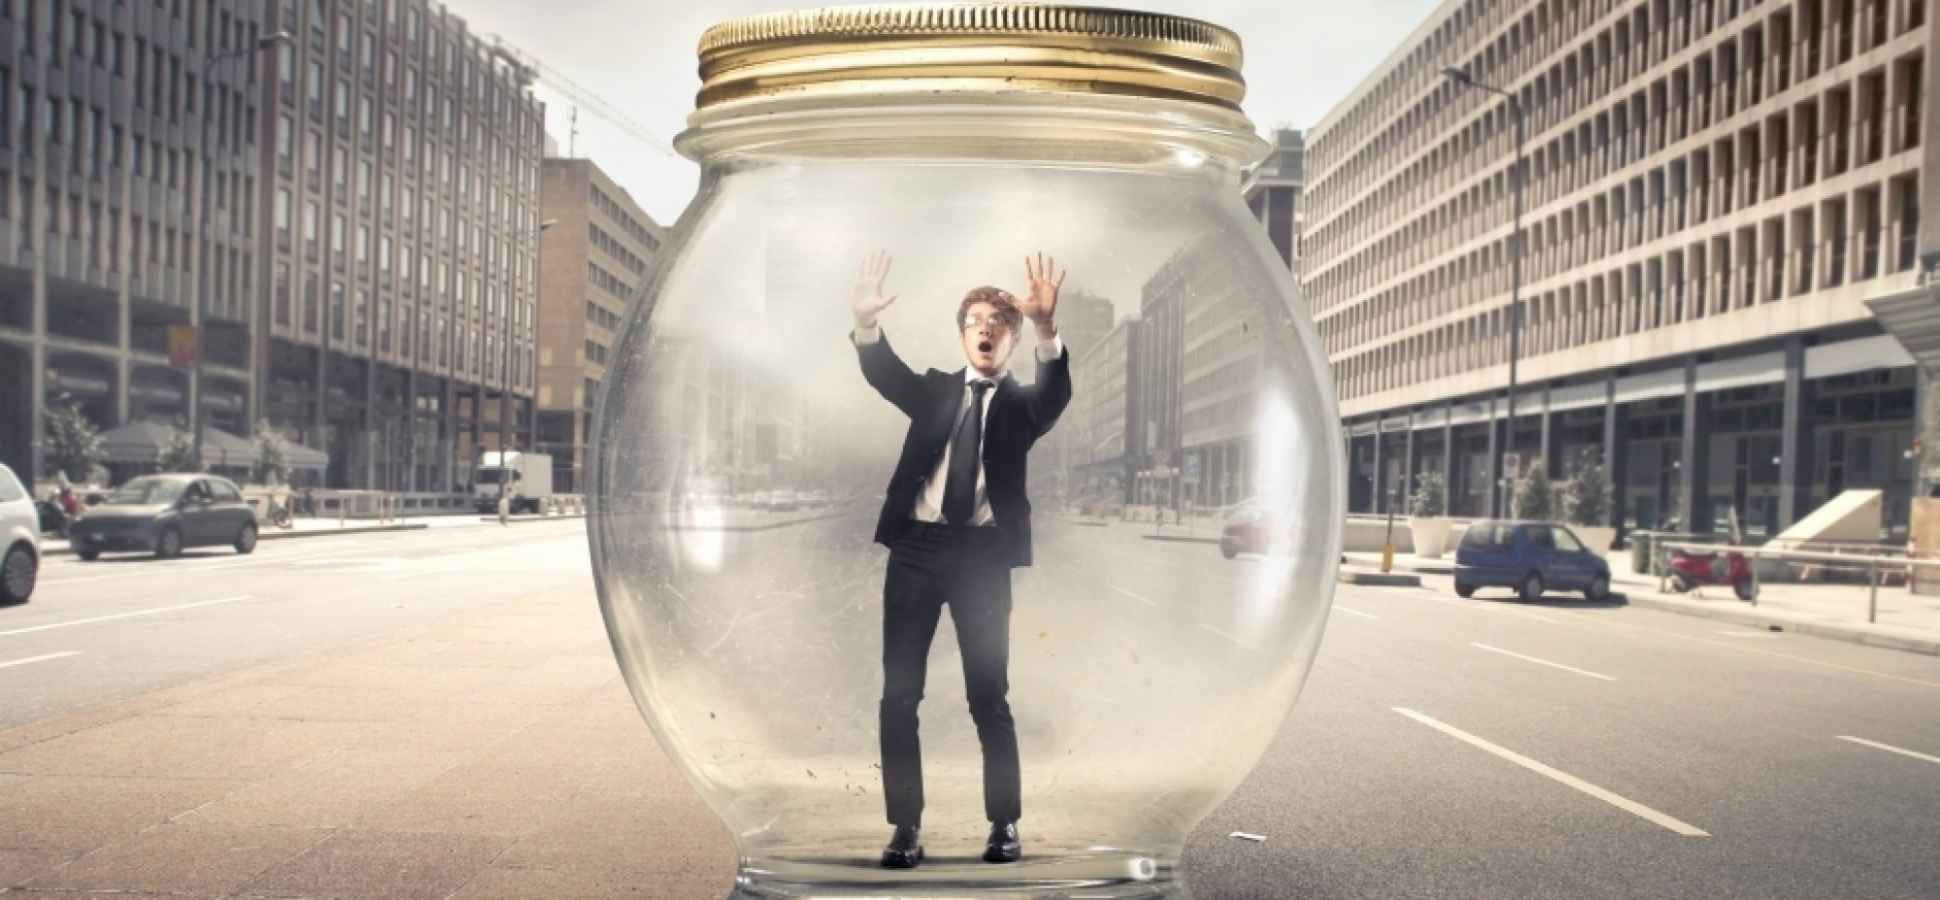 13 Ways to Break Out of Any Slump and Get Motivated | Inc com